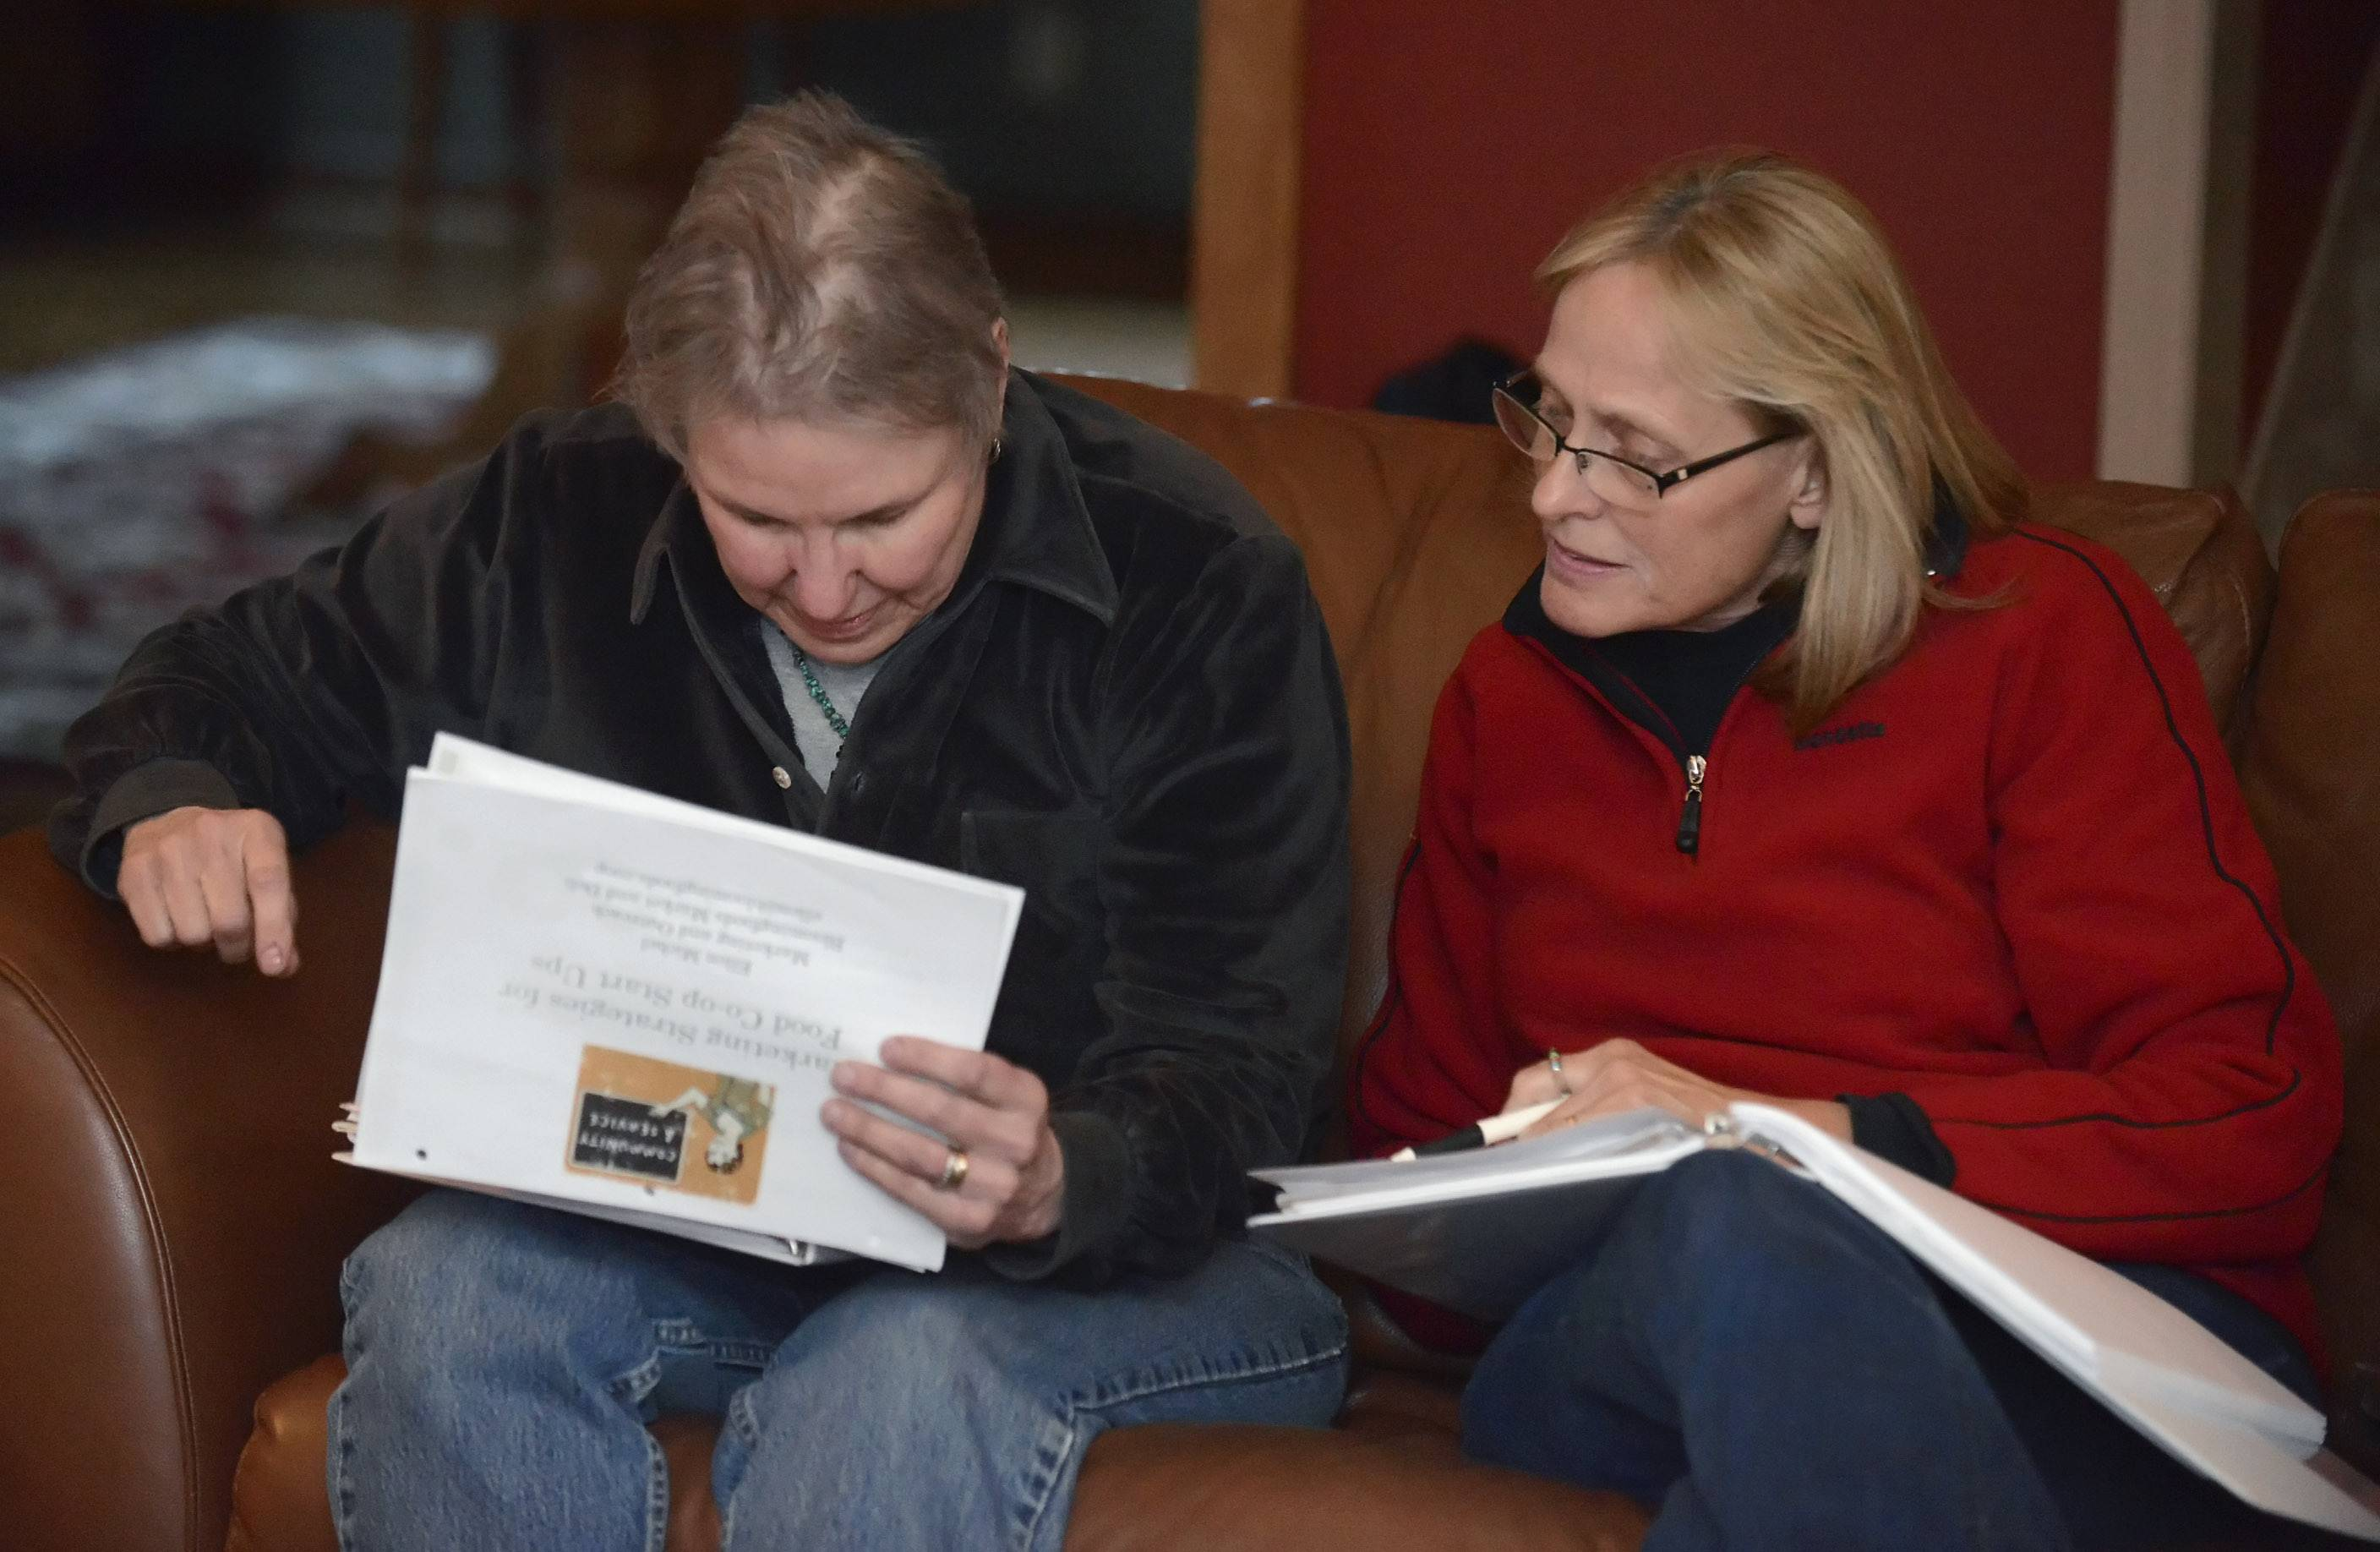 Caron Wenzel of Woodstock, left, and Kim Brix of Marengo review a marketing strategy workbook during a meeting for the yet-to-be-named McHenry area food co-op.